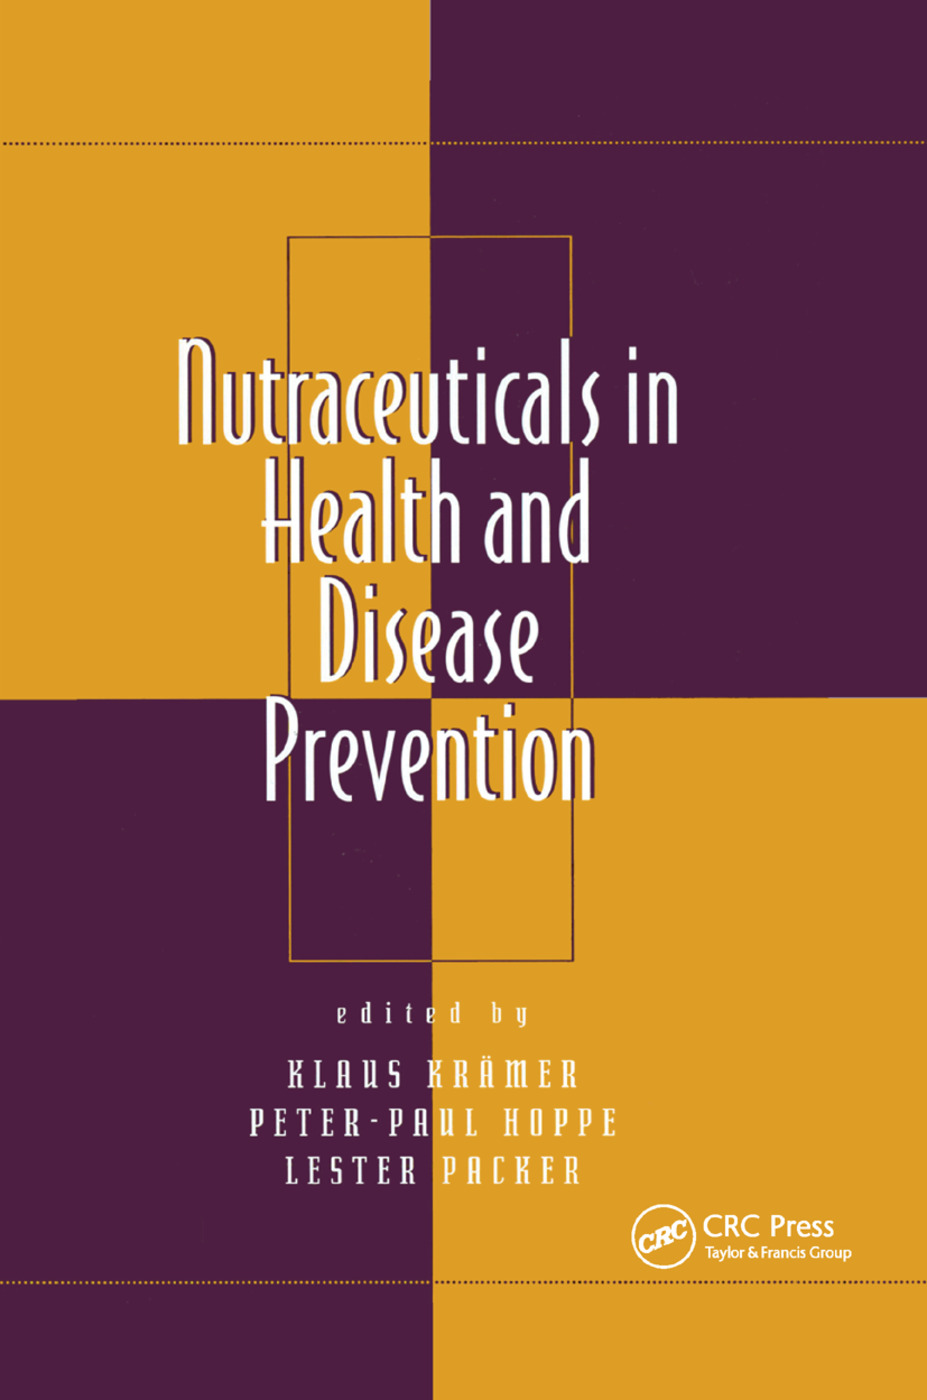 Nutraceuticals in Health and Disease Prevention: 1st Edition (Paperback) book cover